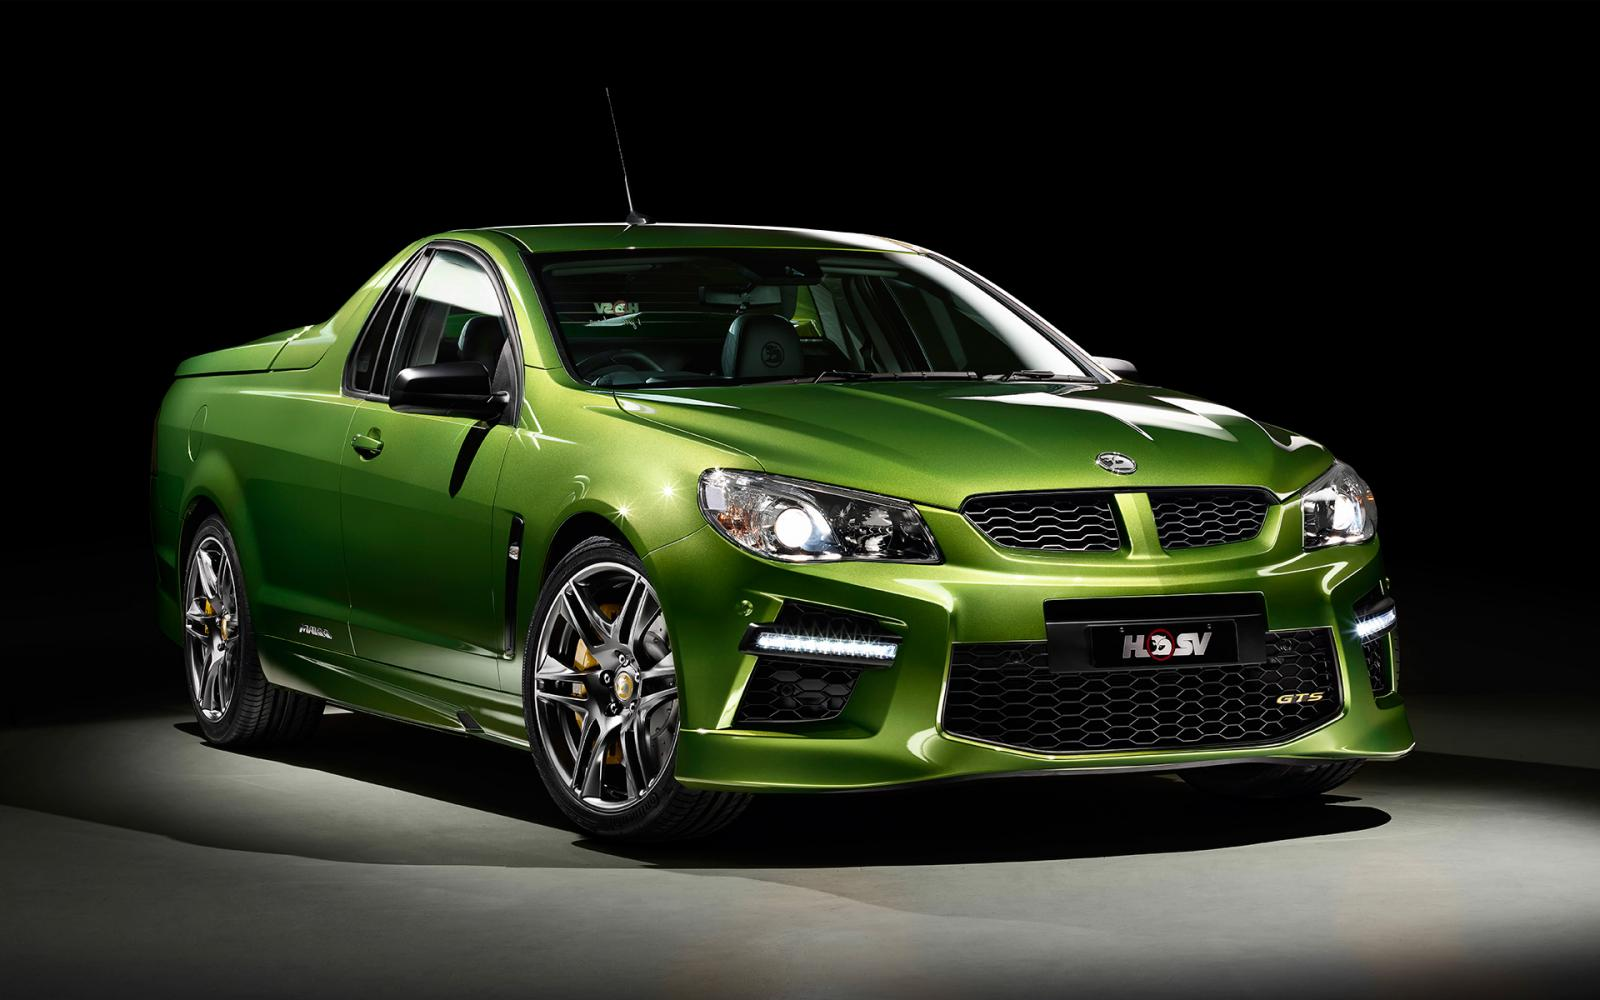 hsv cars news hsv unleashes limited edition gts maloo. Black Bedroom Furniture Sets. Home Design Ideas